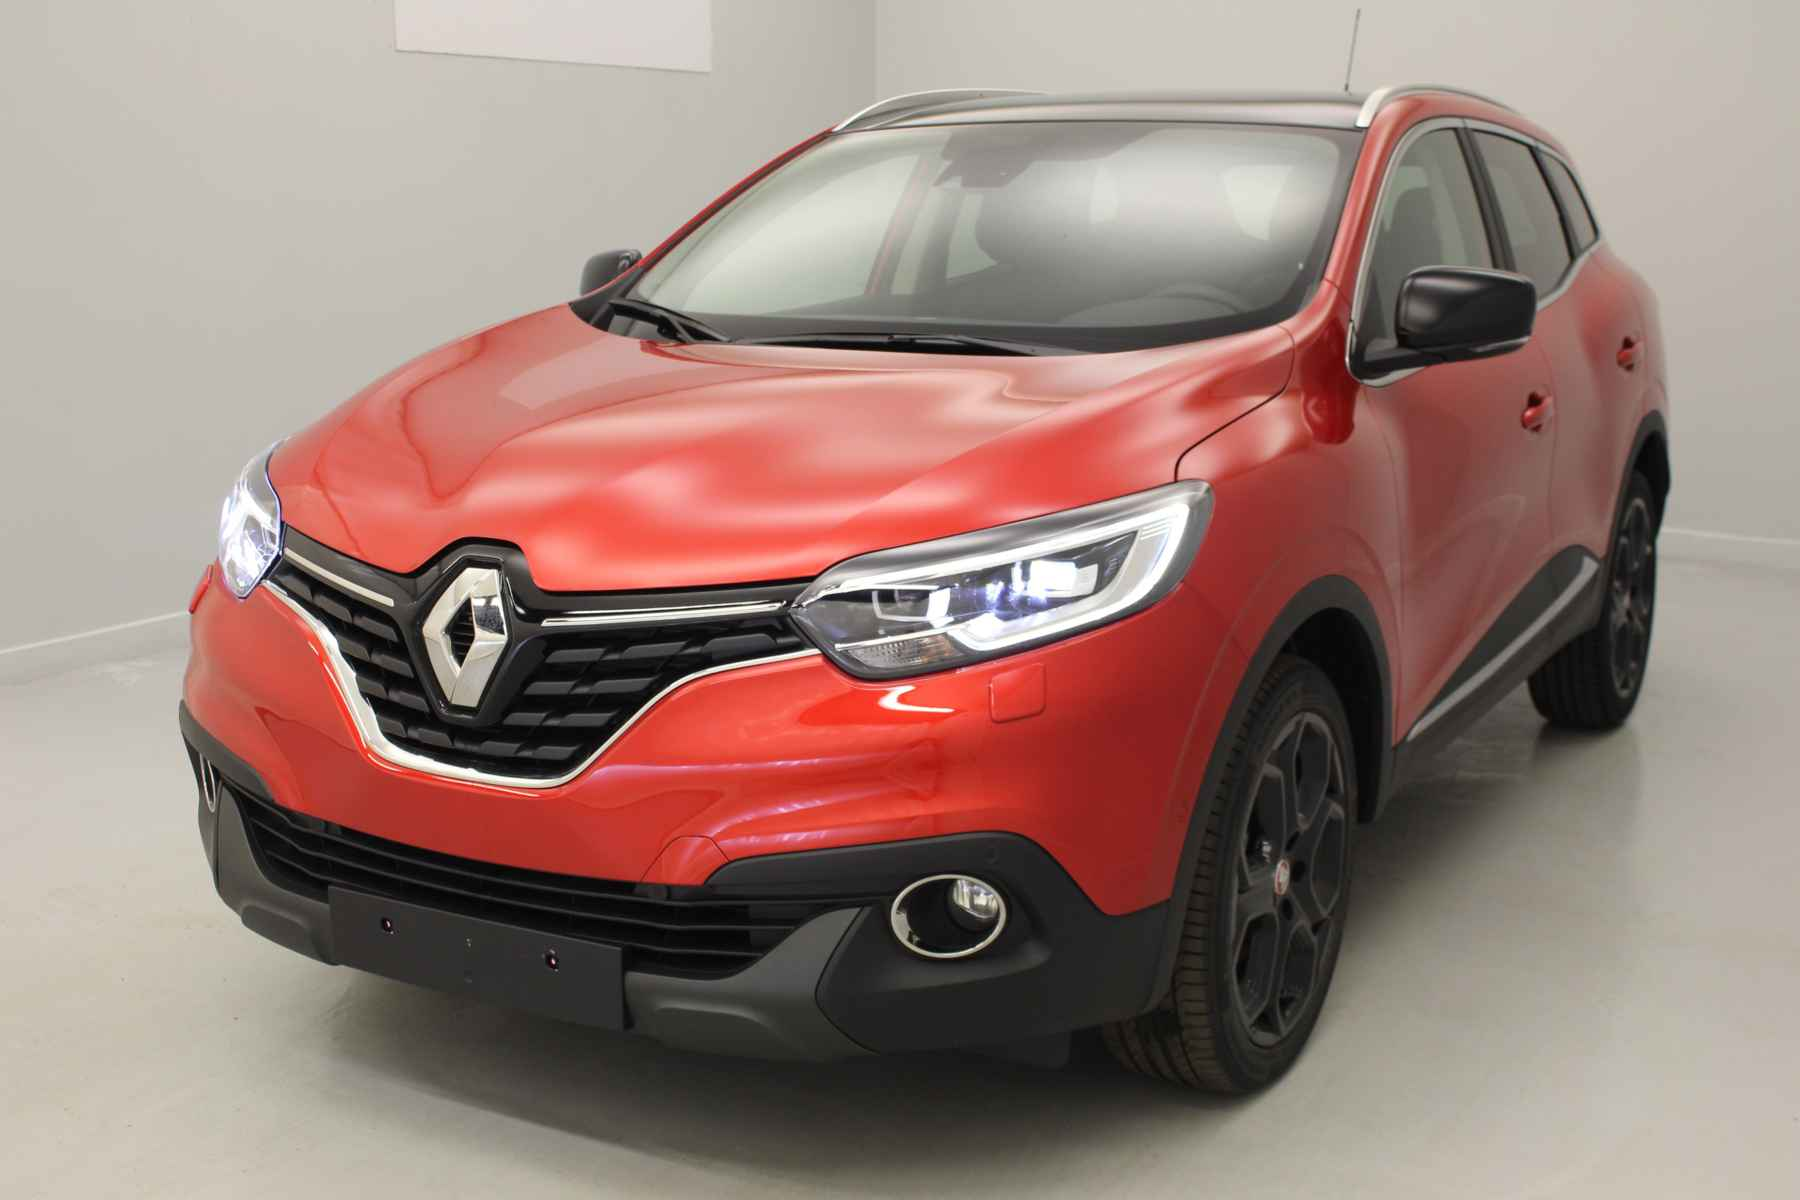 RENAULT Kadjar TCe 130 Energy Intens EDC Rouge Flamme + Pack Cuir + Toit panoramique avec options